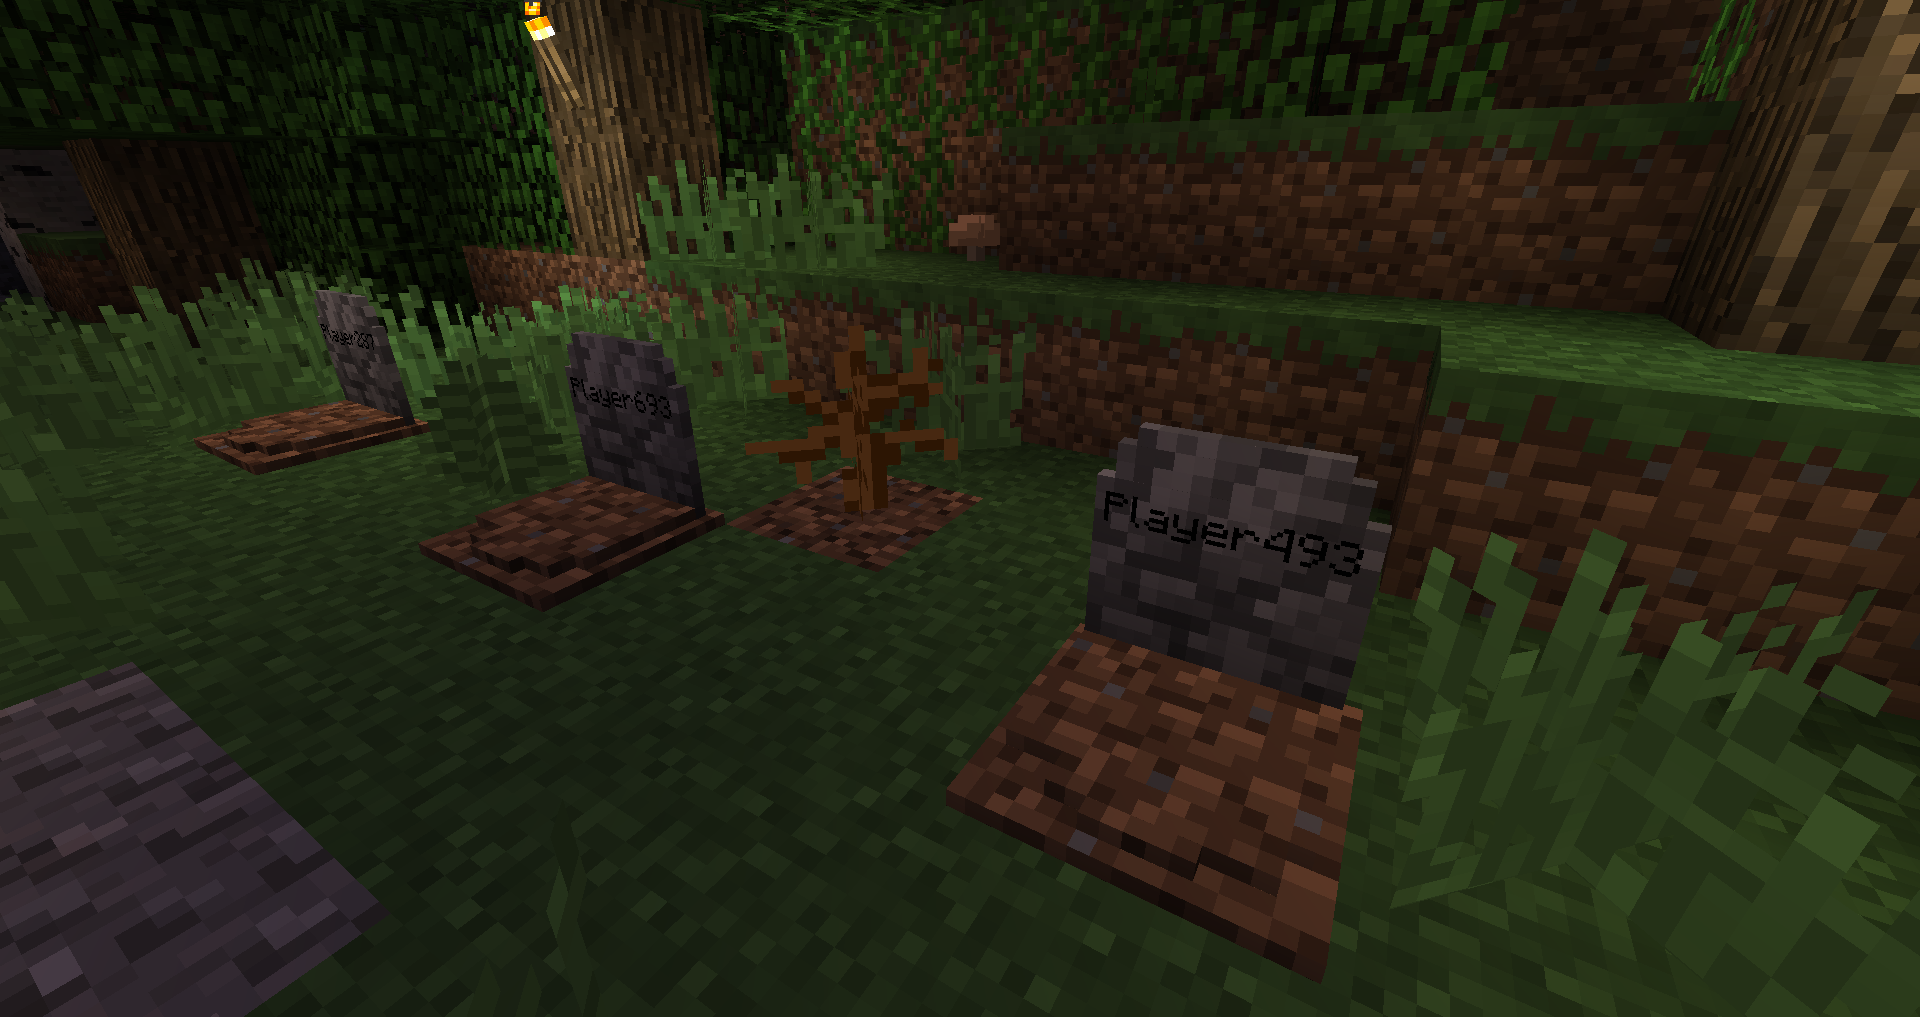 484nbt6t [1.8.9] GraveStone (EuhDawson) Mod Download